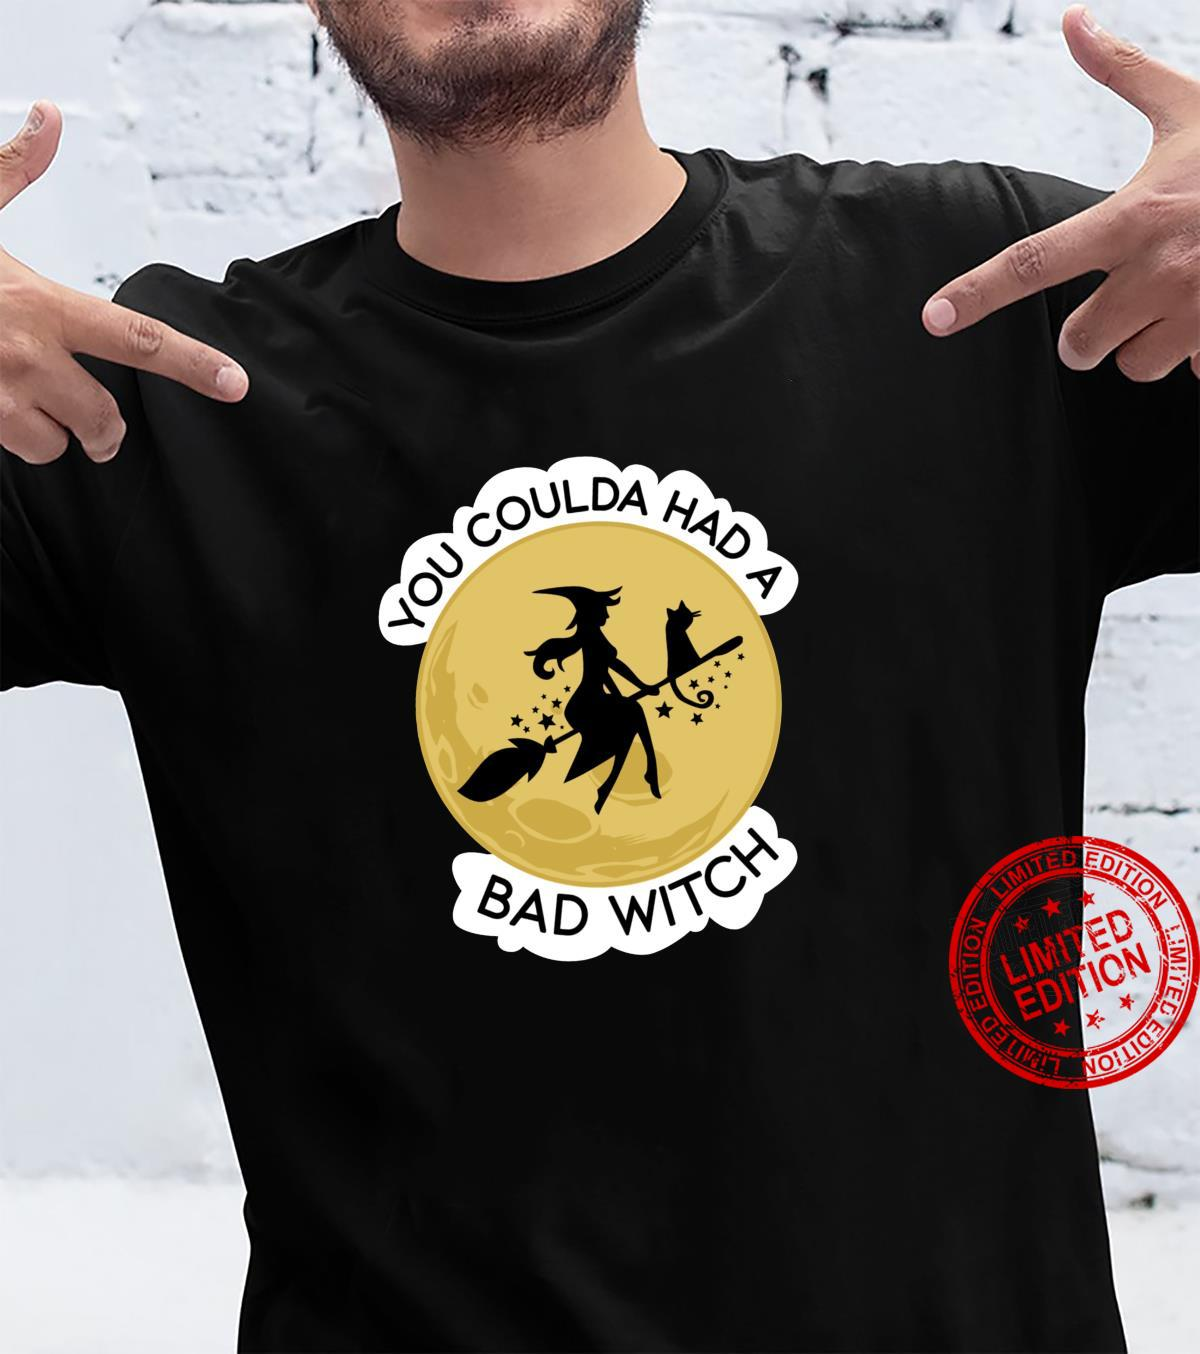 You Coulda Had a Bad Witch Shirt (3)